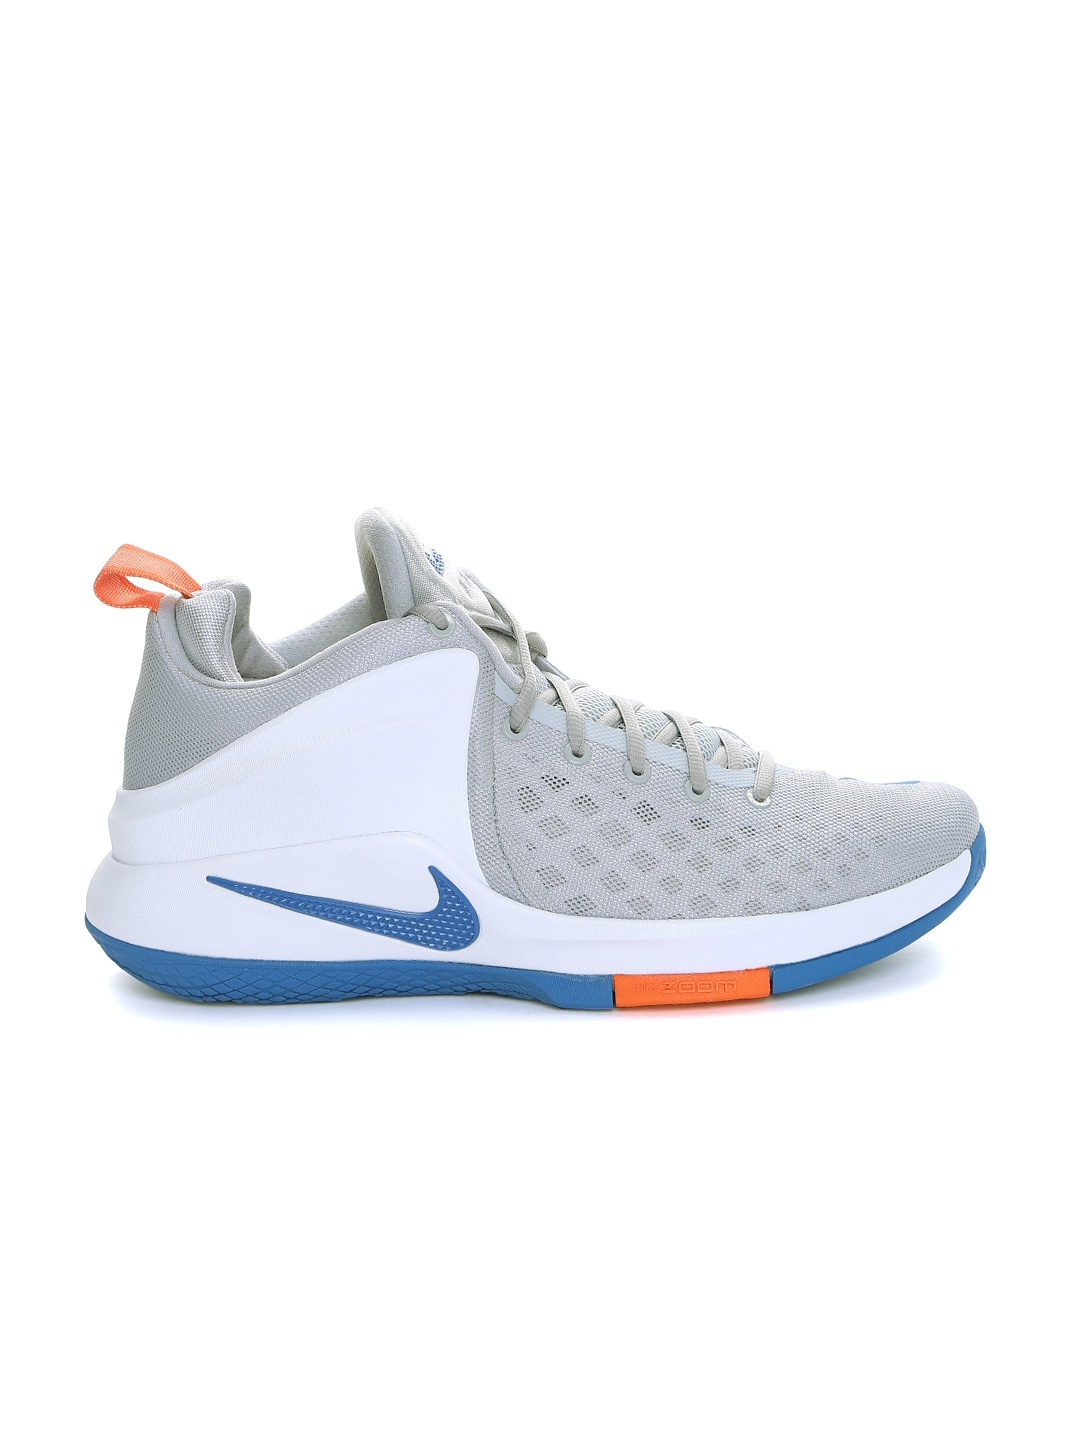 Nike Shoes Price In India Amazon